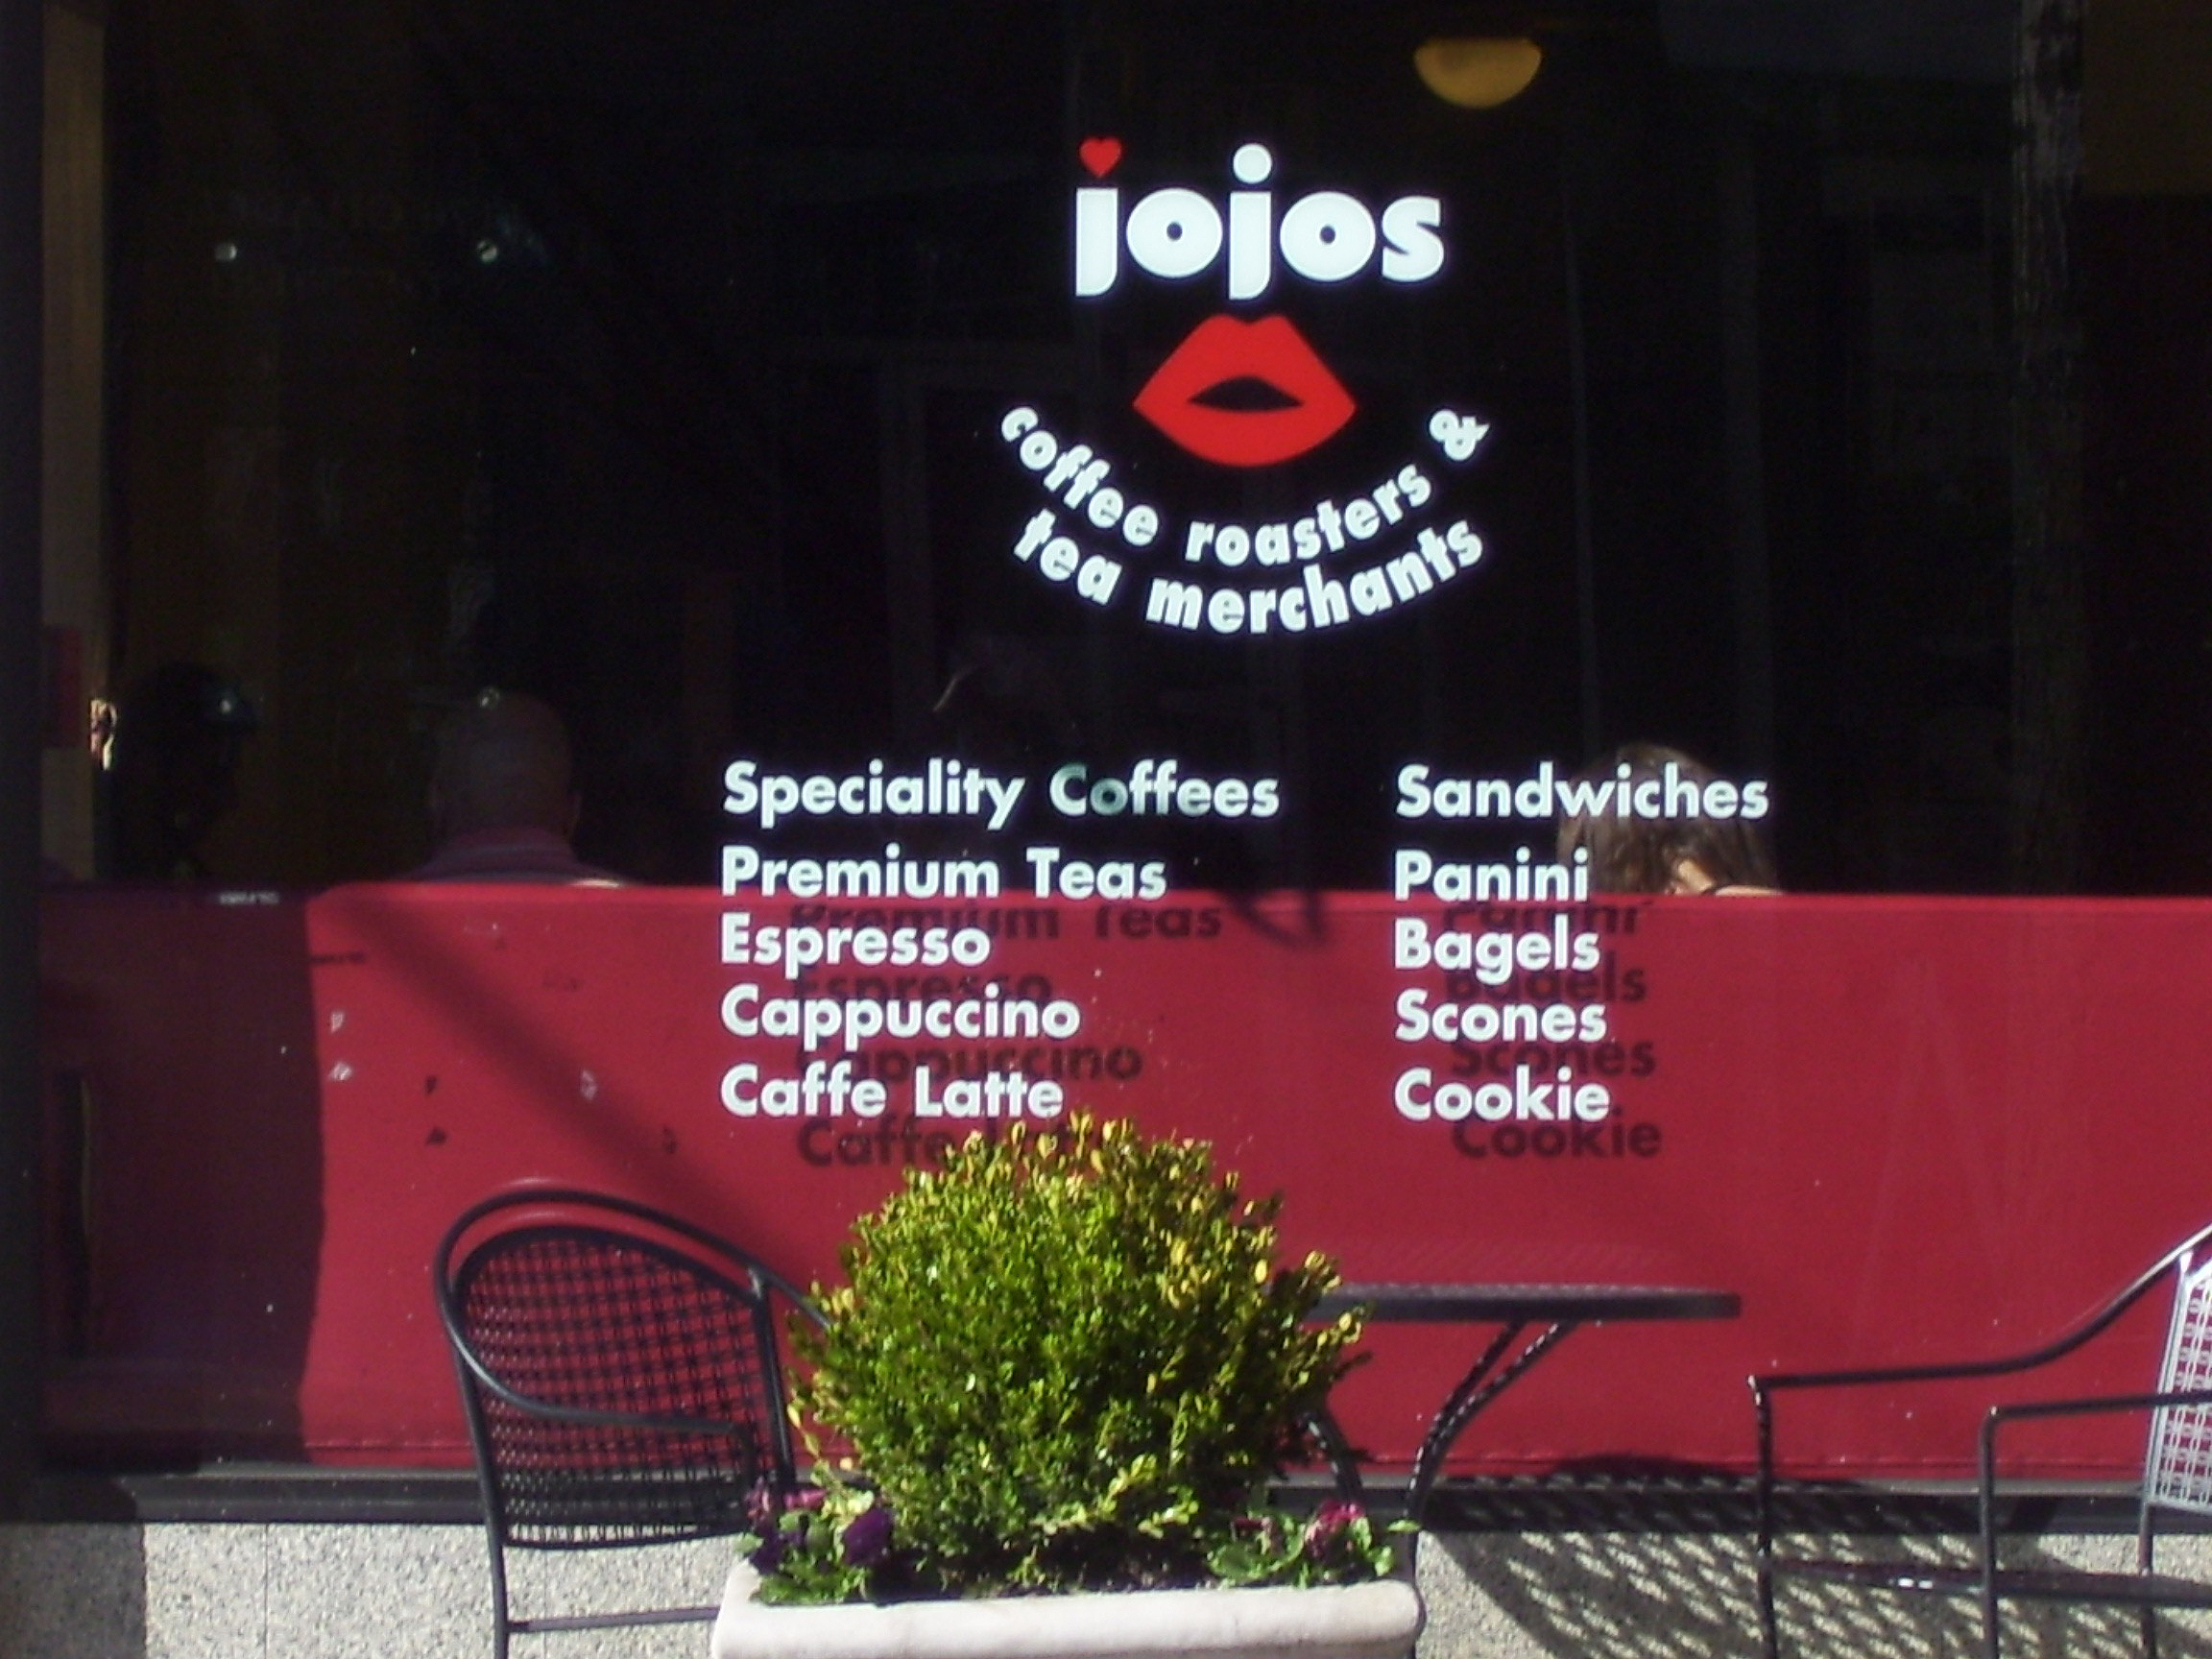 JoJo's Coffee 1177 Chapel Street (203) 785-8888